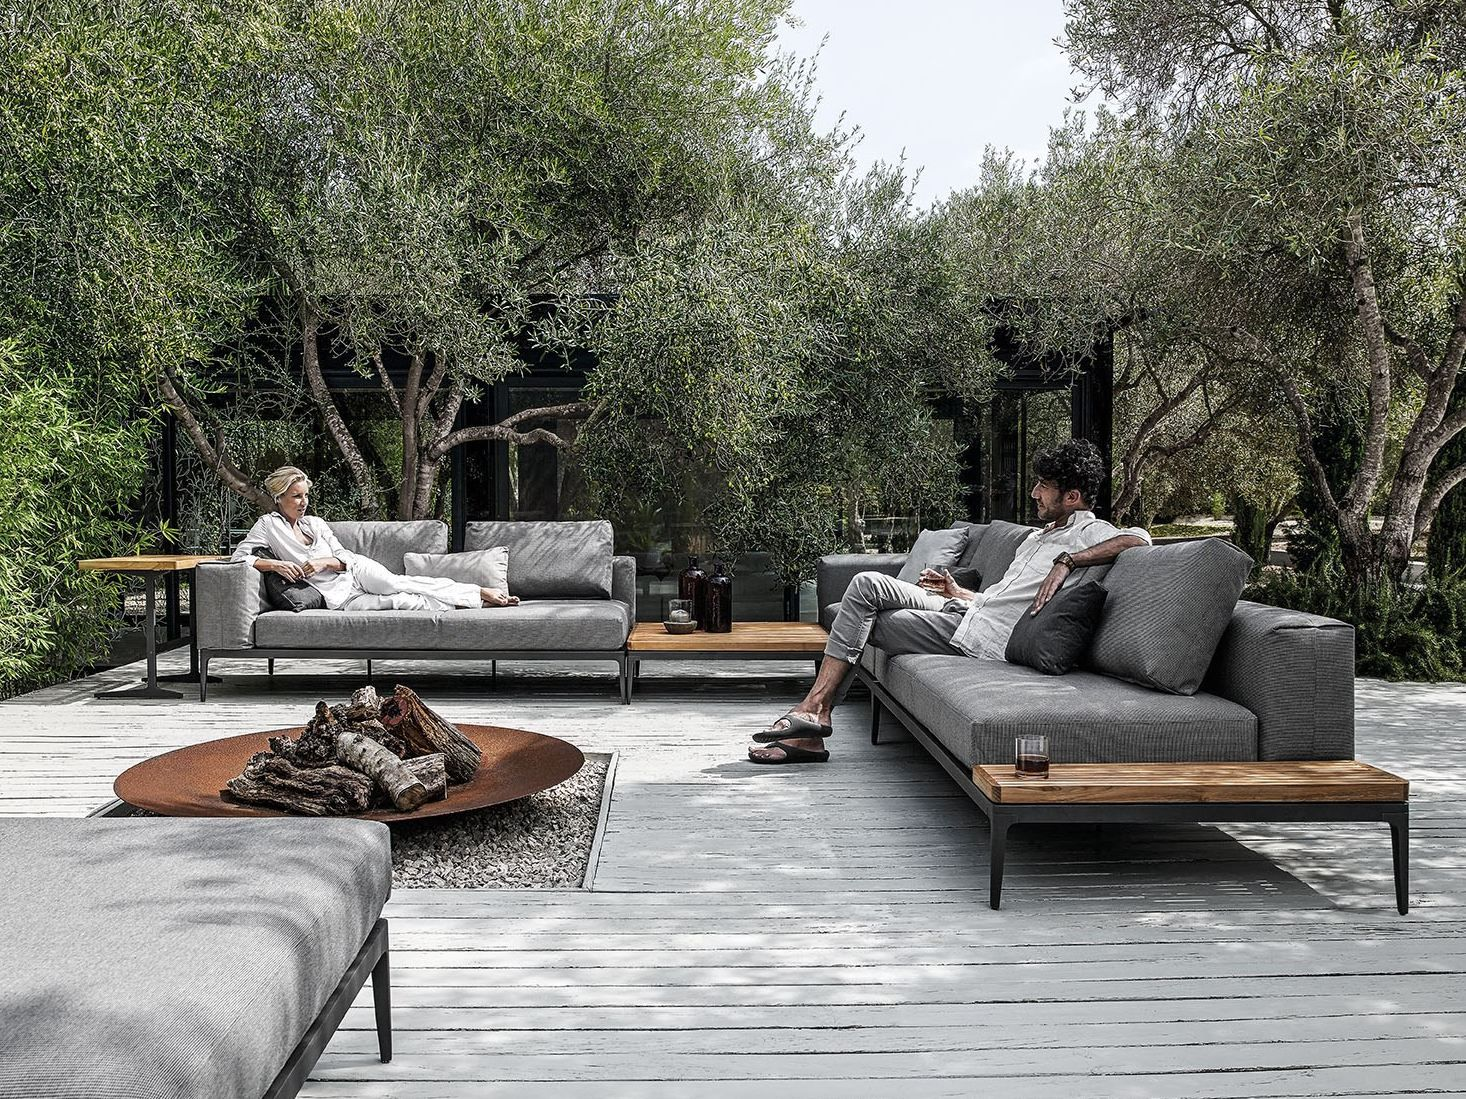 GRID Sofa Grid Outdoor Lounge Collection by Gloster design Henrik Pedersen